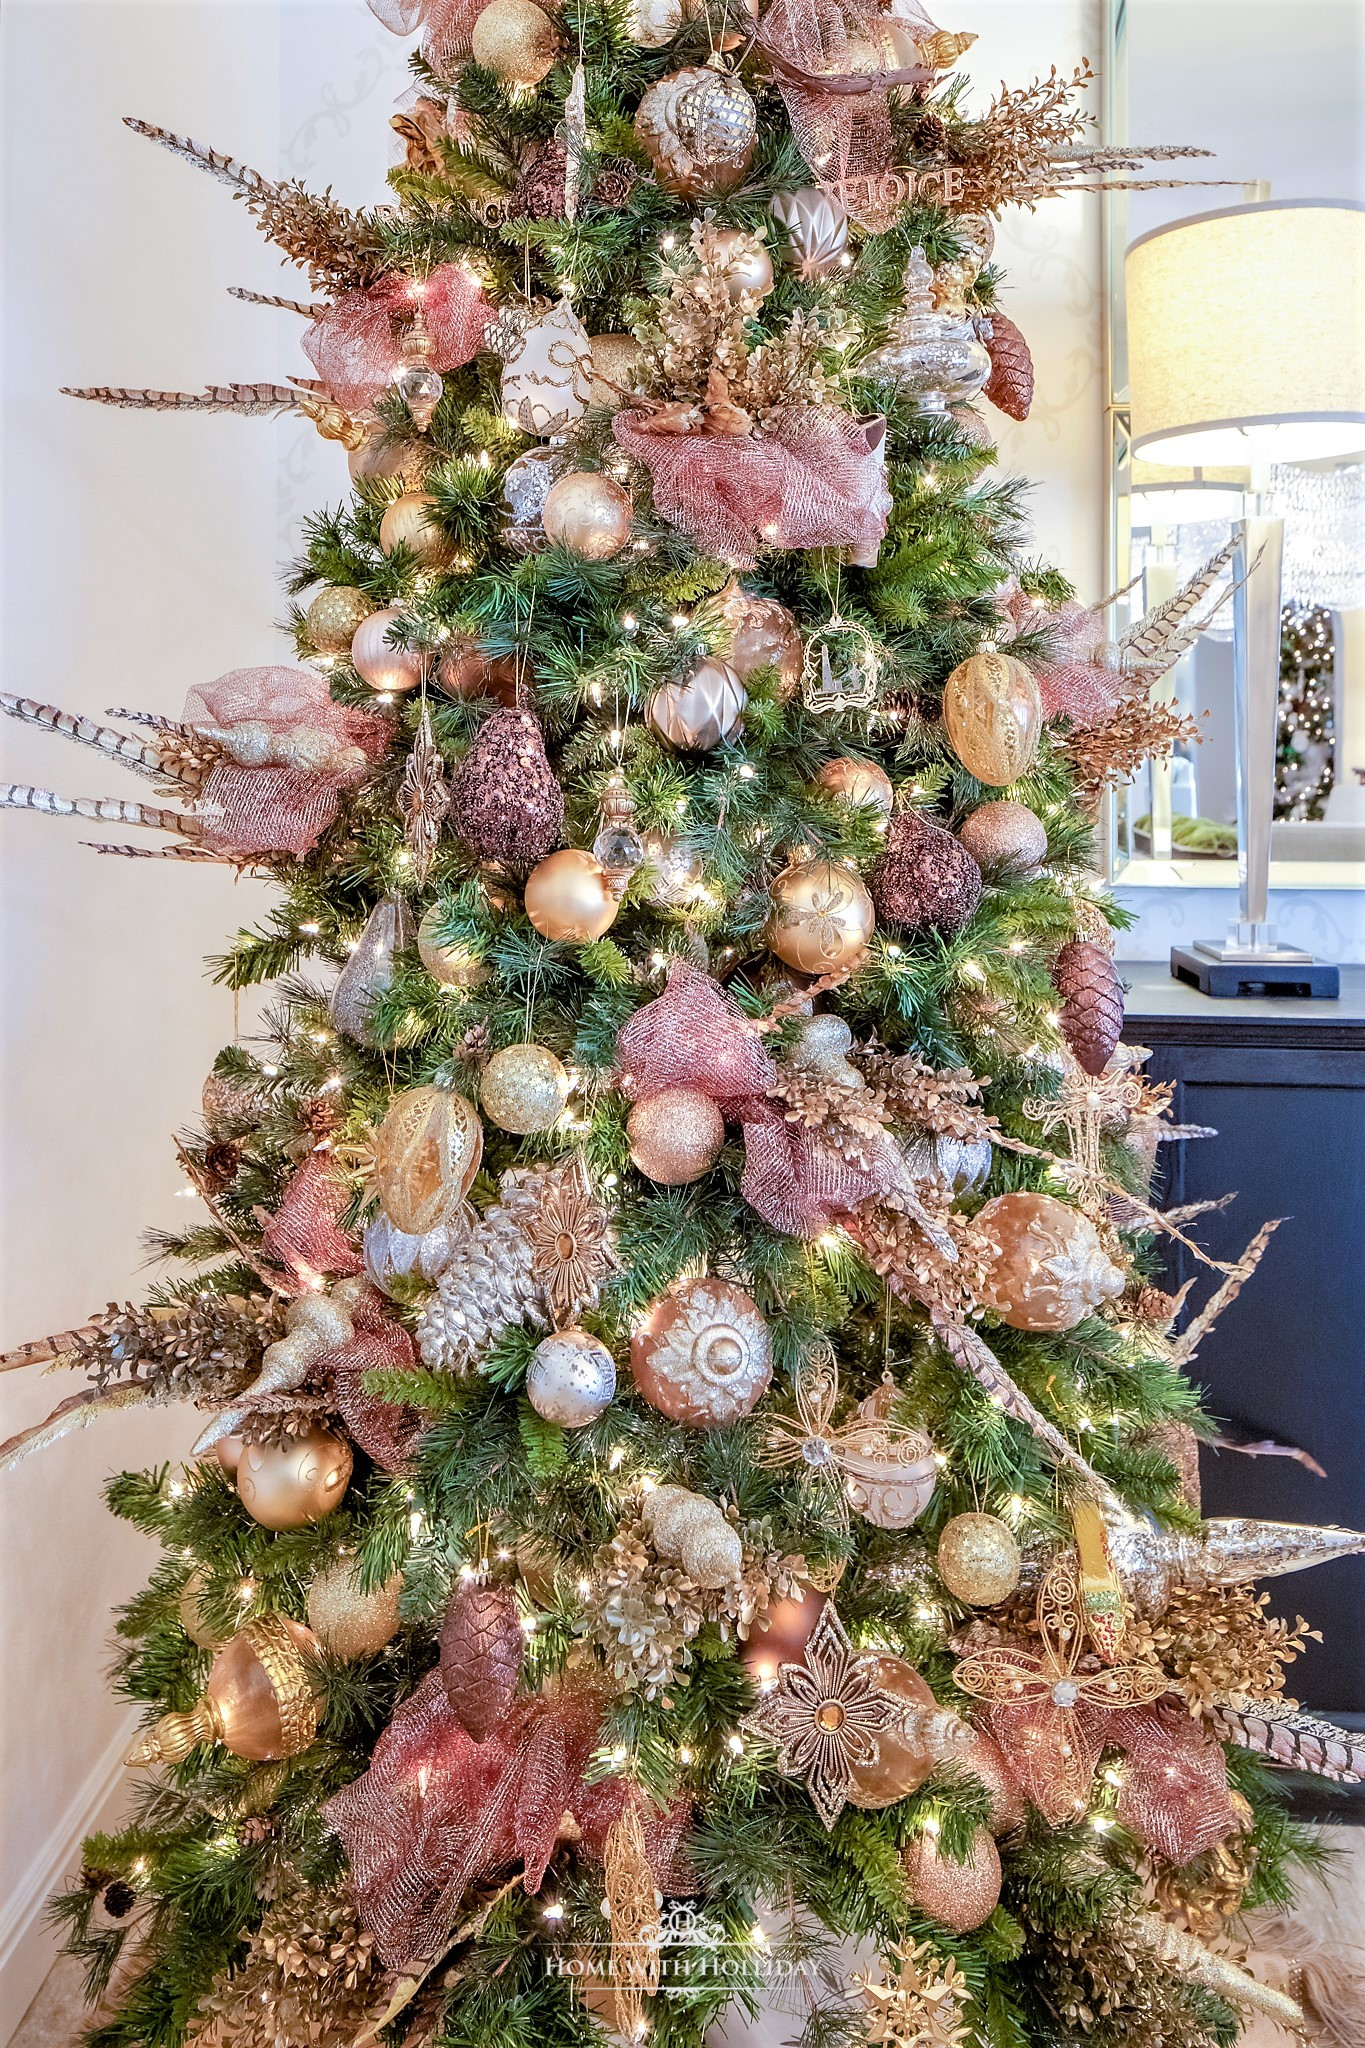 I Am So Excited To Show You One Of My Christmas Trees For This Year Part Goal Here Is How Can Make Simple Changes The